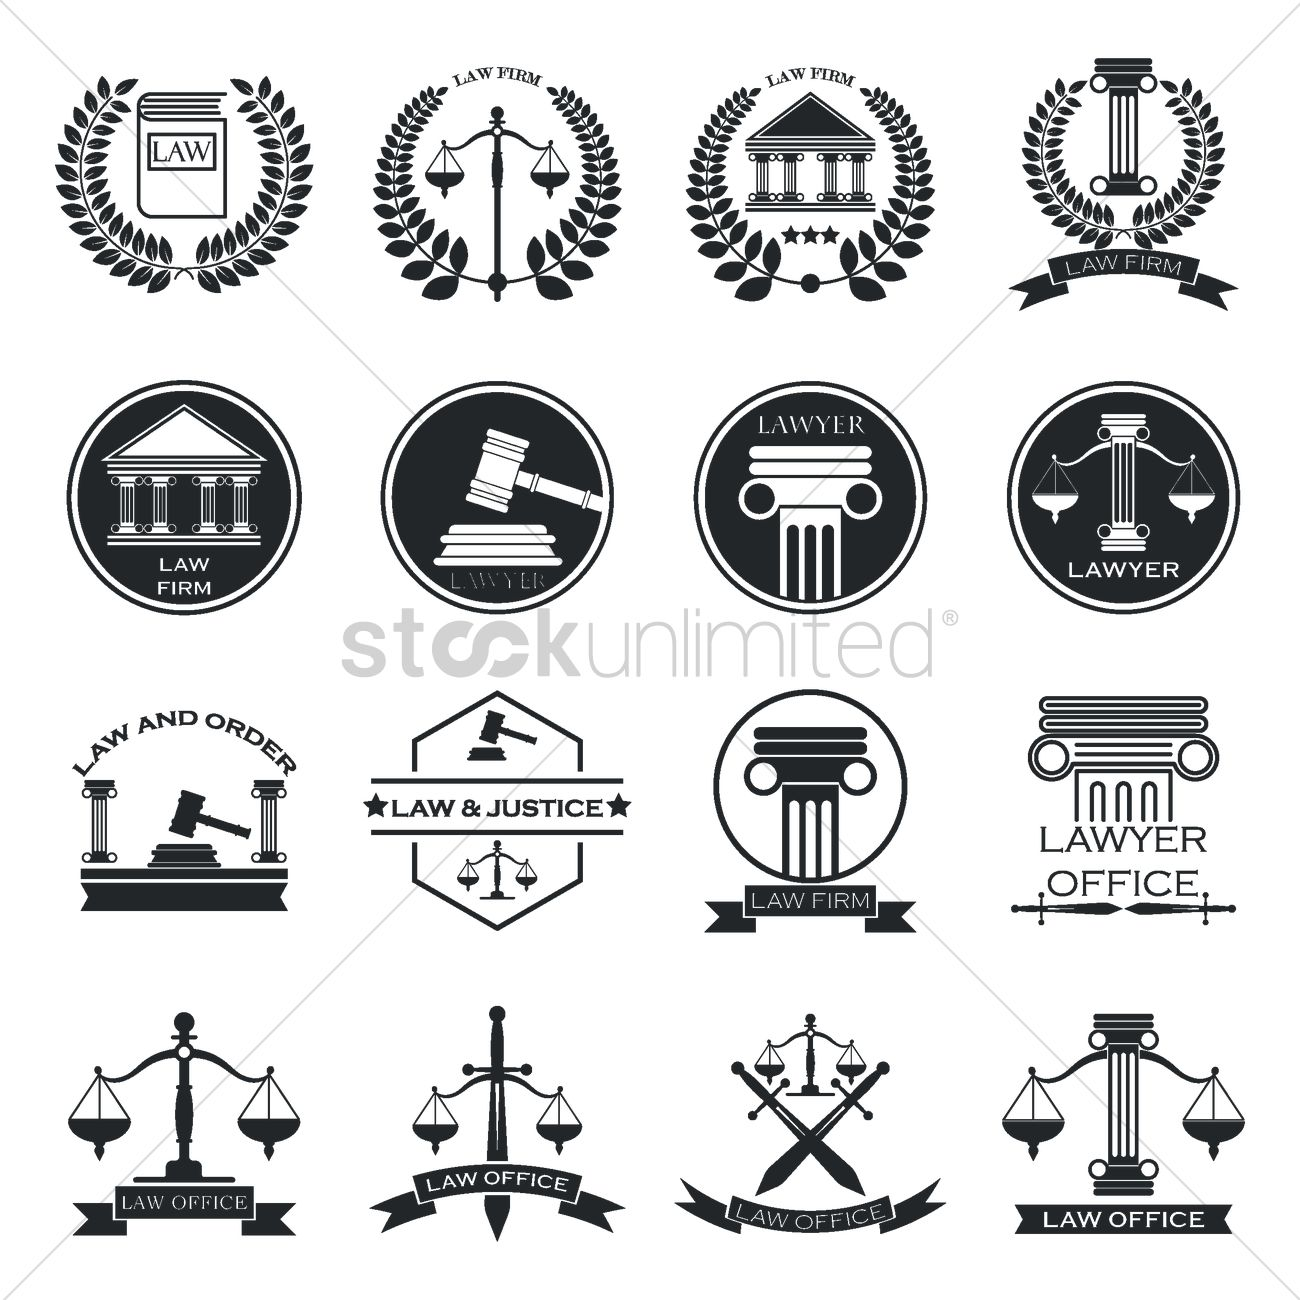 Set Of Law Logo Element Icons Vector Image